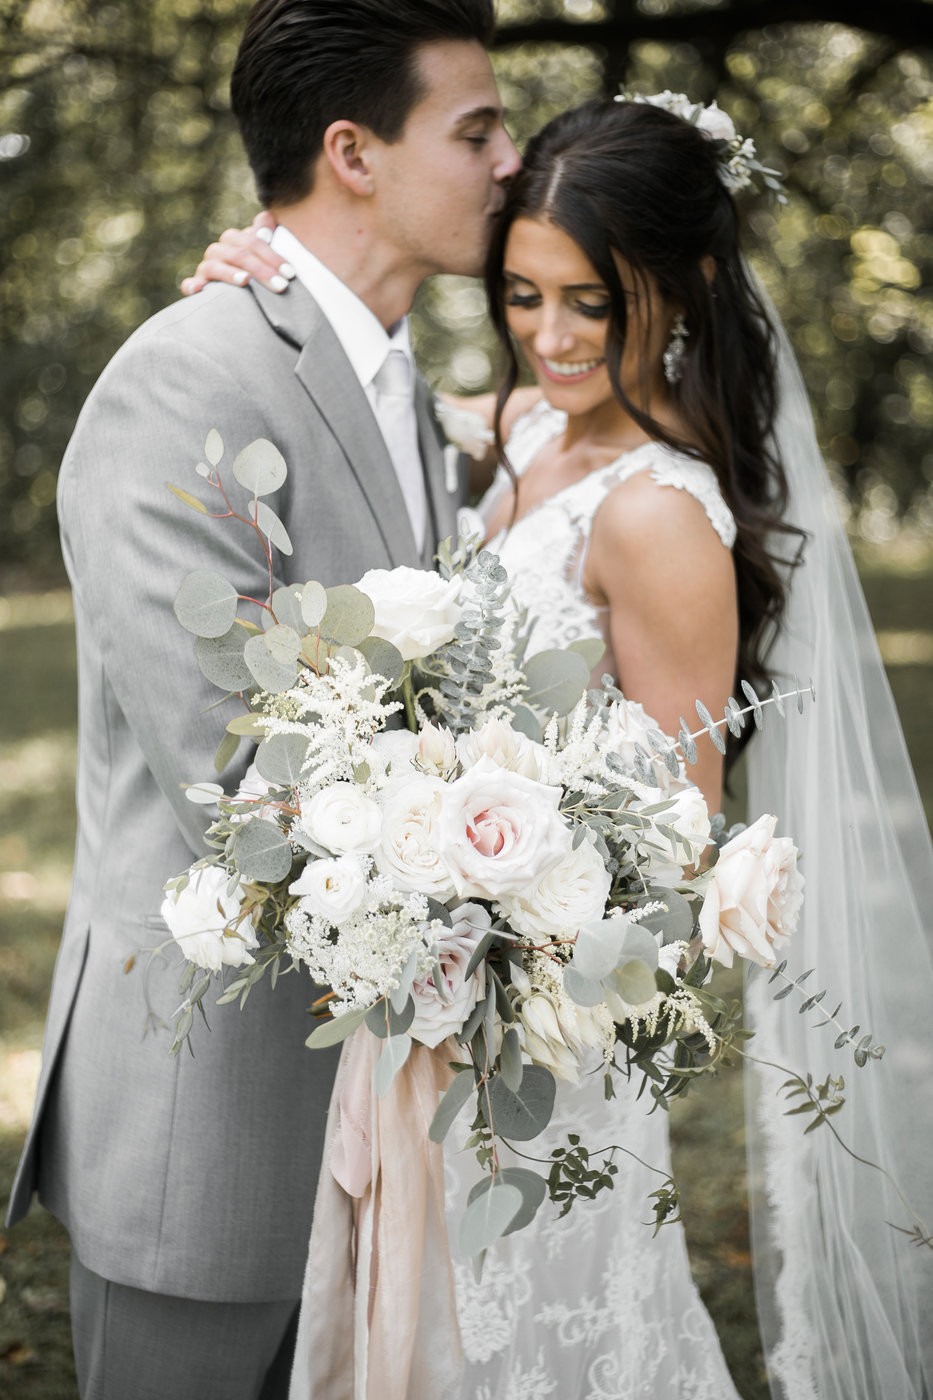 bride holding large blush white and eucalyptus bouquet by studio bloom iowa while groom is kissing her head in grey suit